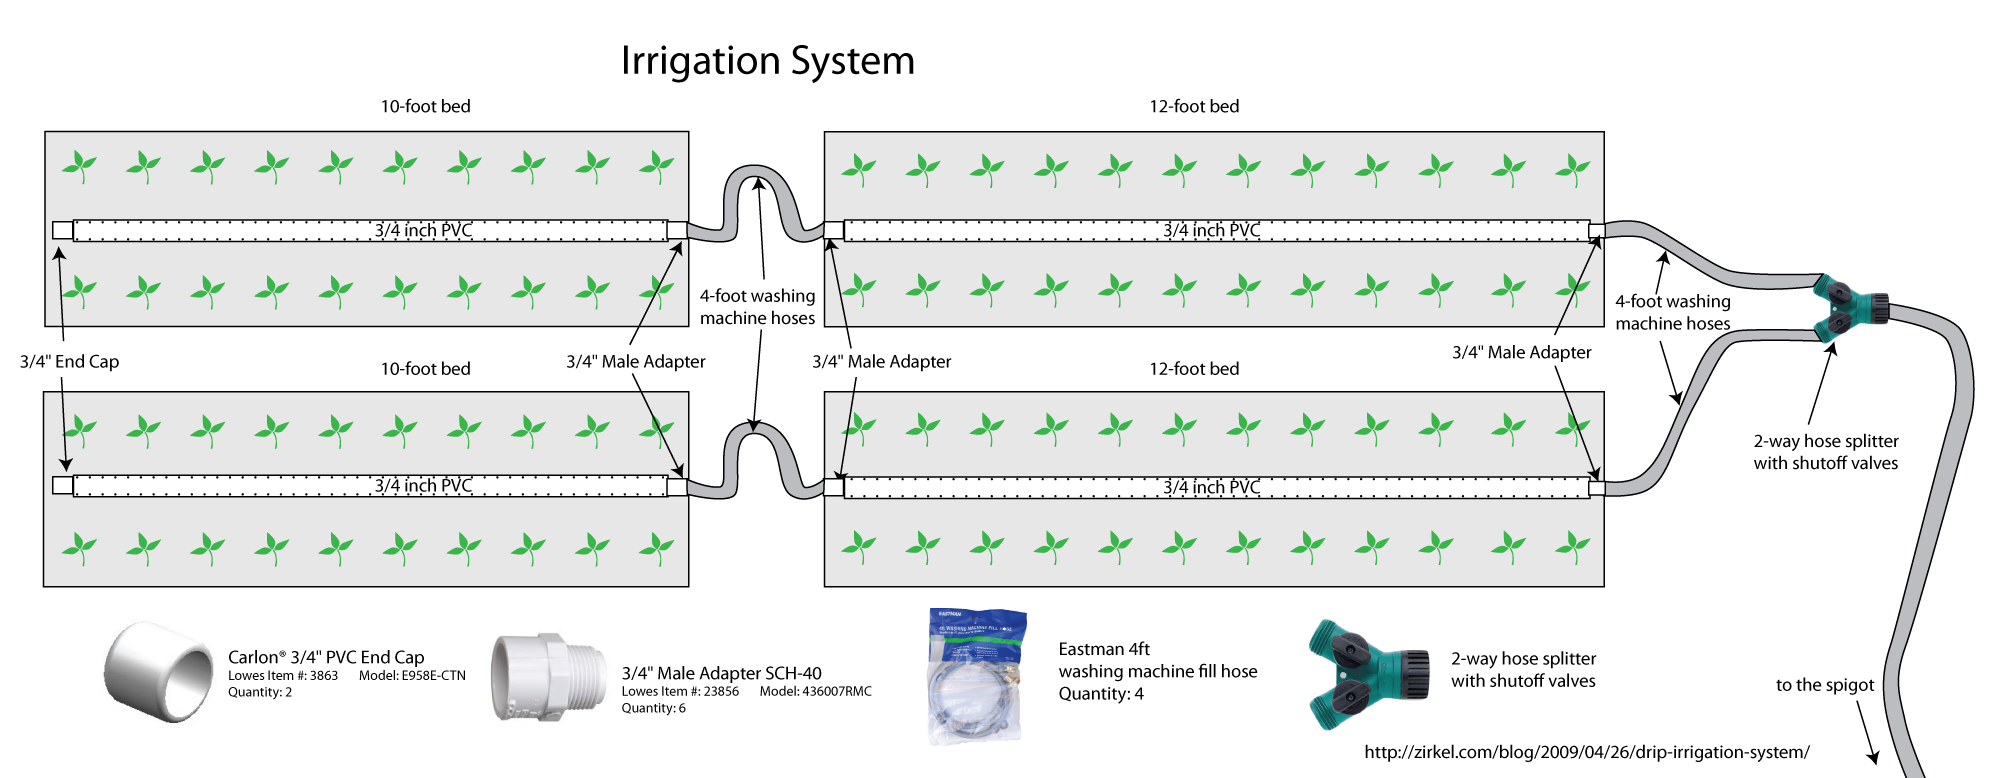 How To Design An Irrigation System At Home the first example system Irrigation System